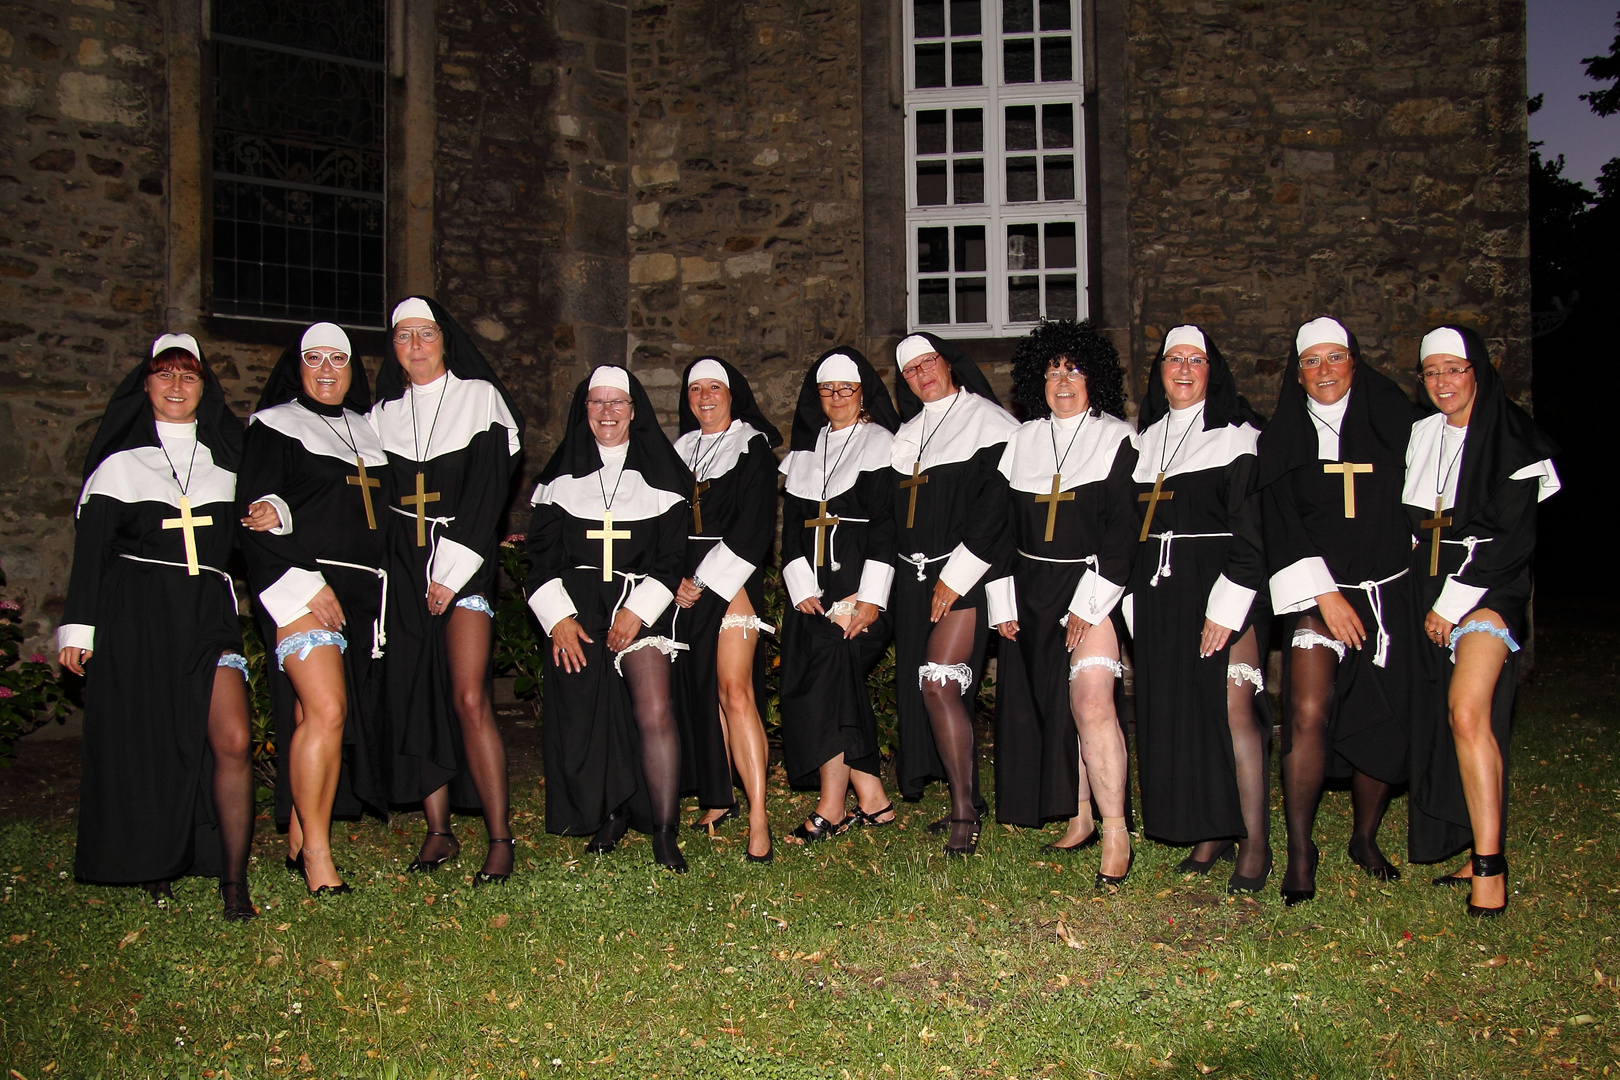 Sister Act in Wolfsburg